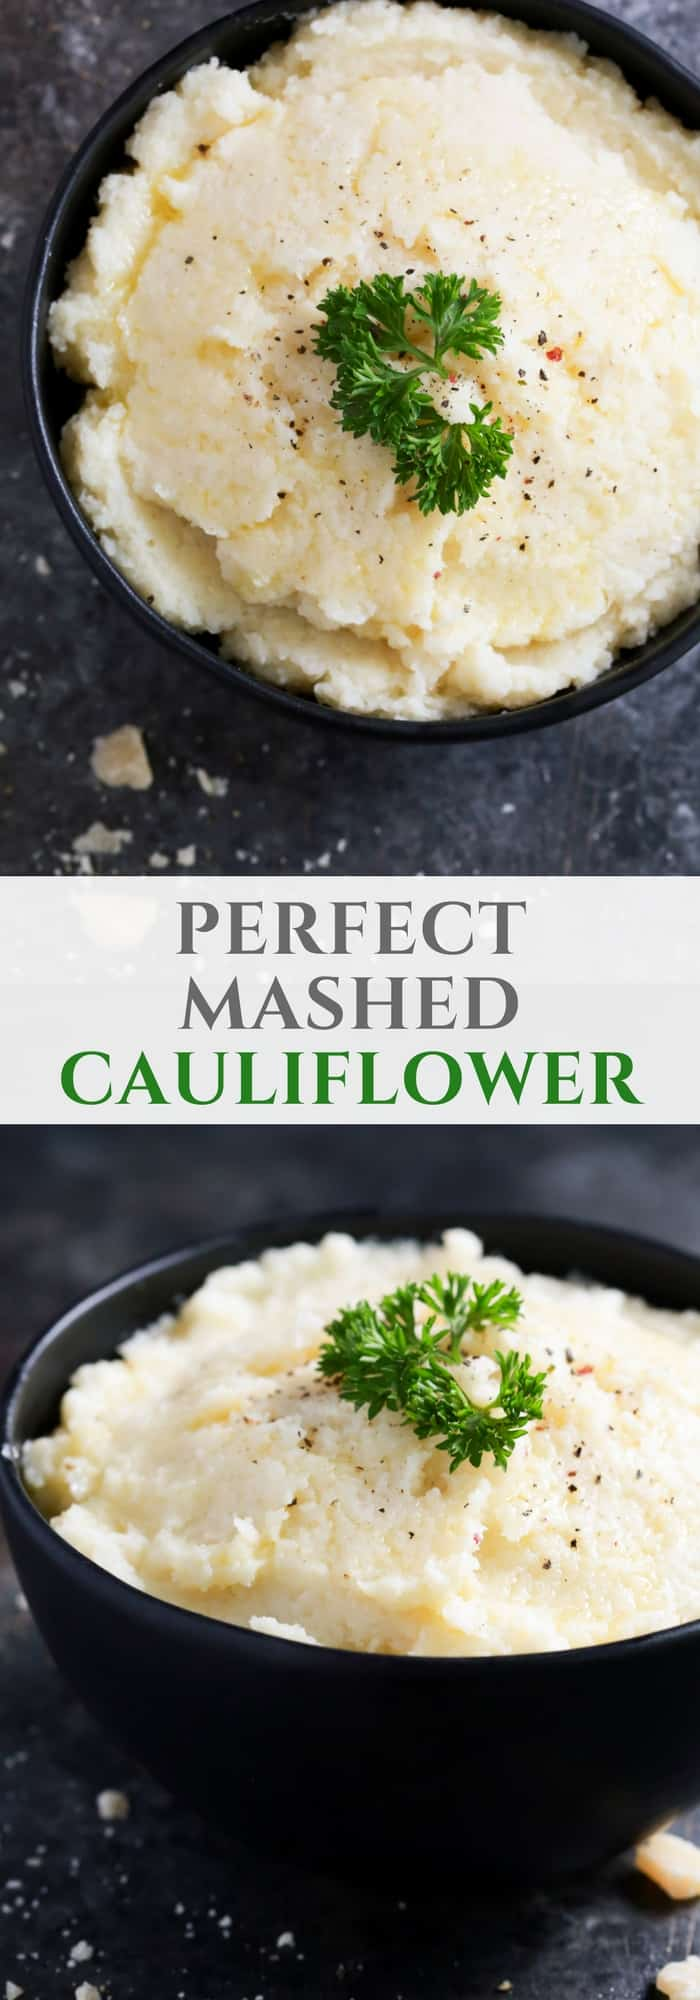 Tired of making watery mashed cauliflower? Try to make my perfect mashed cauliflower recipe using an immersion blender and season with garlic powder, Parmesan cheese, mayo and butter. Mm… Amazing! It has a perfect smooth texture that you and your family will love.